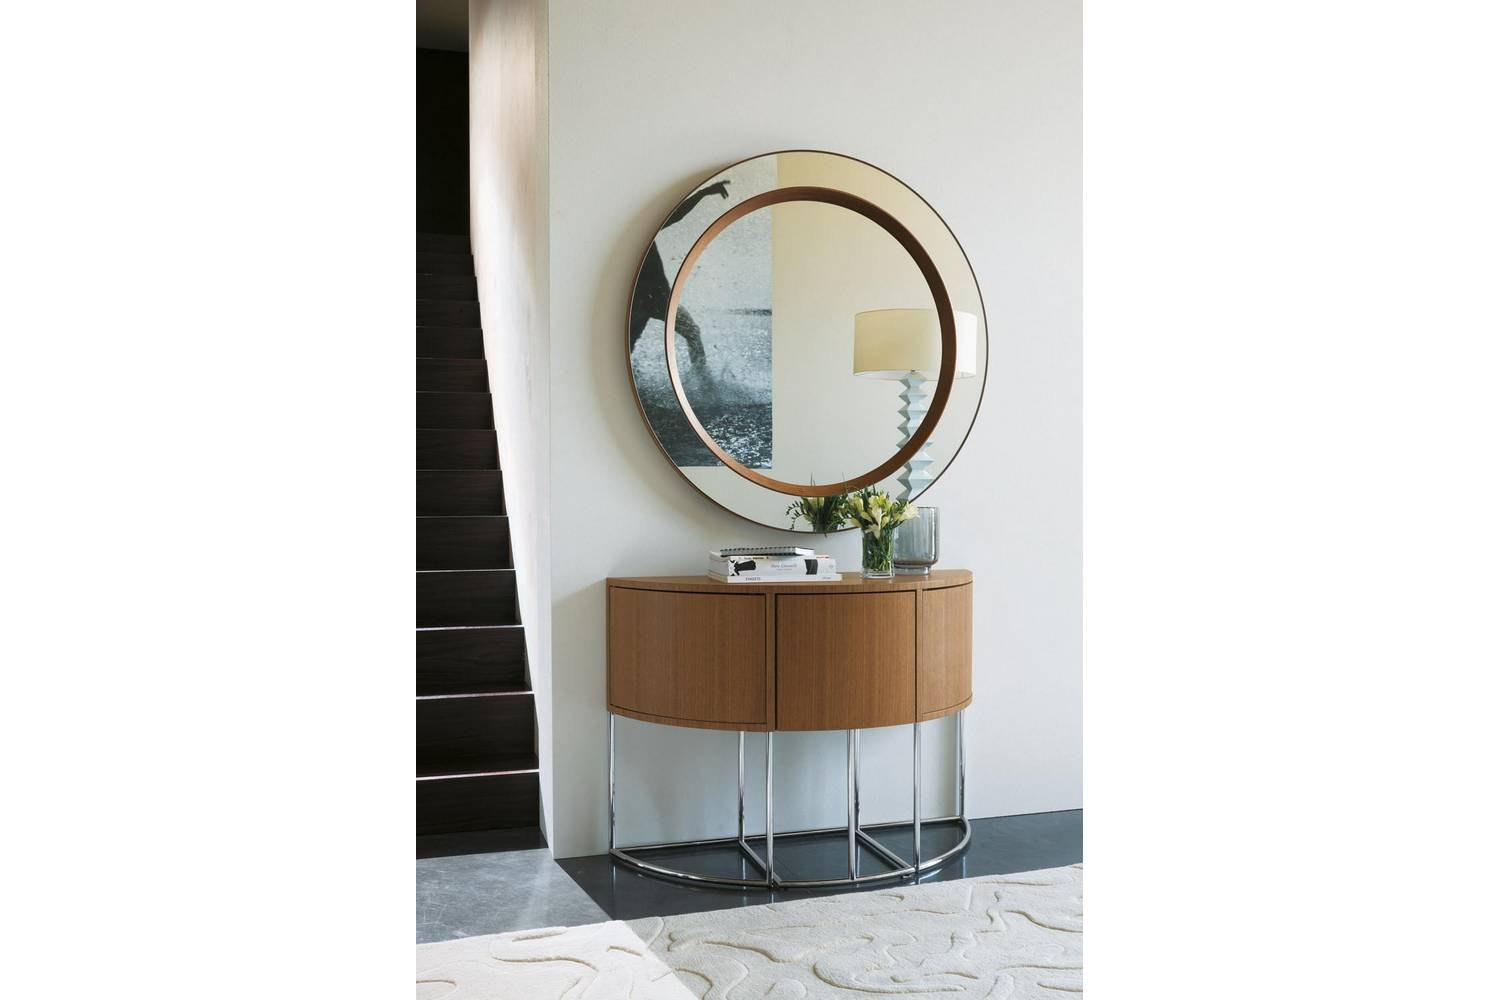 Vanity Dressing Table by G. Azzarello for Porada